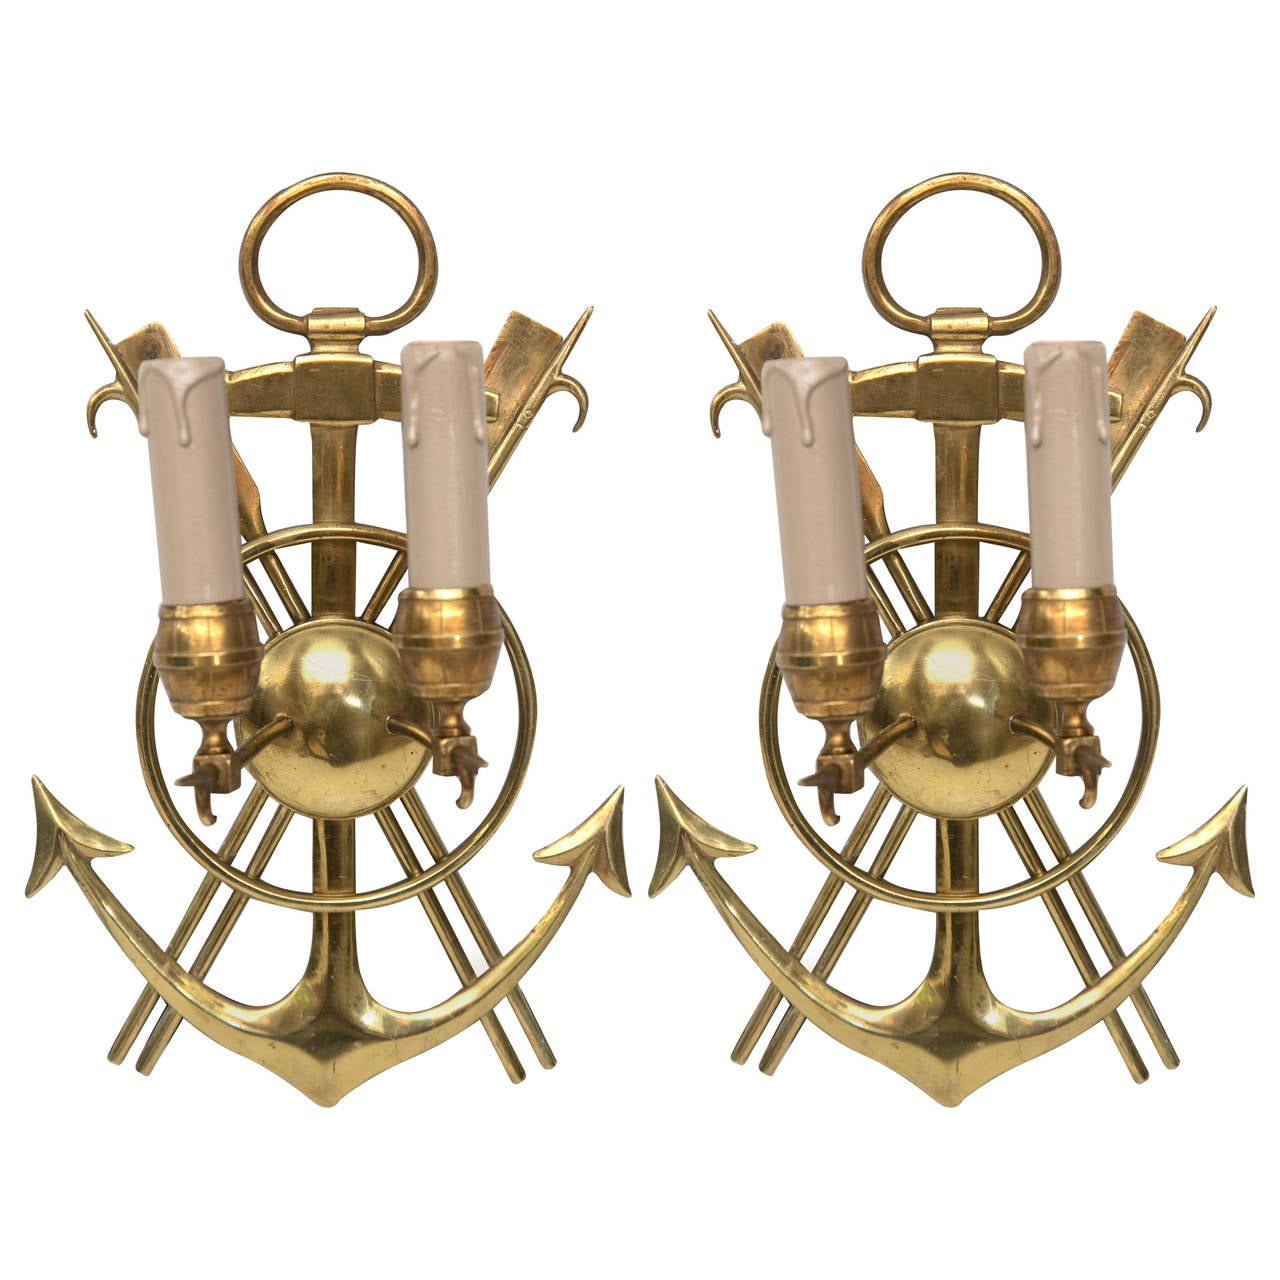 Wall Sconces Nautical: Pair Of Vintage French Solid Brass Nautical Design Wall